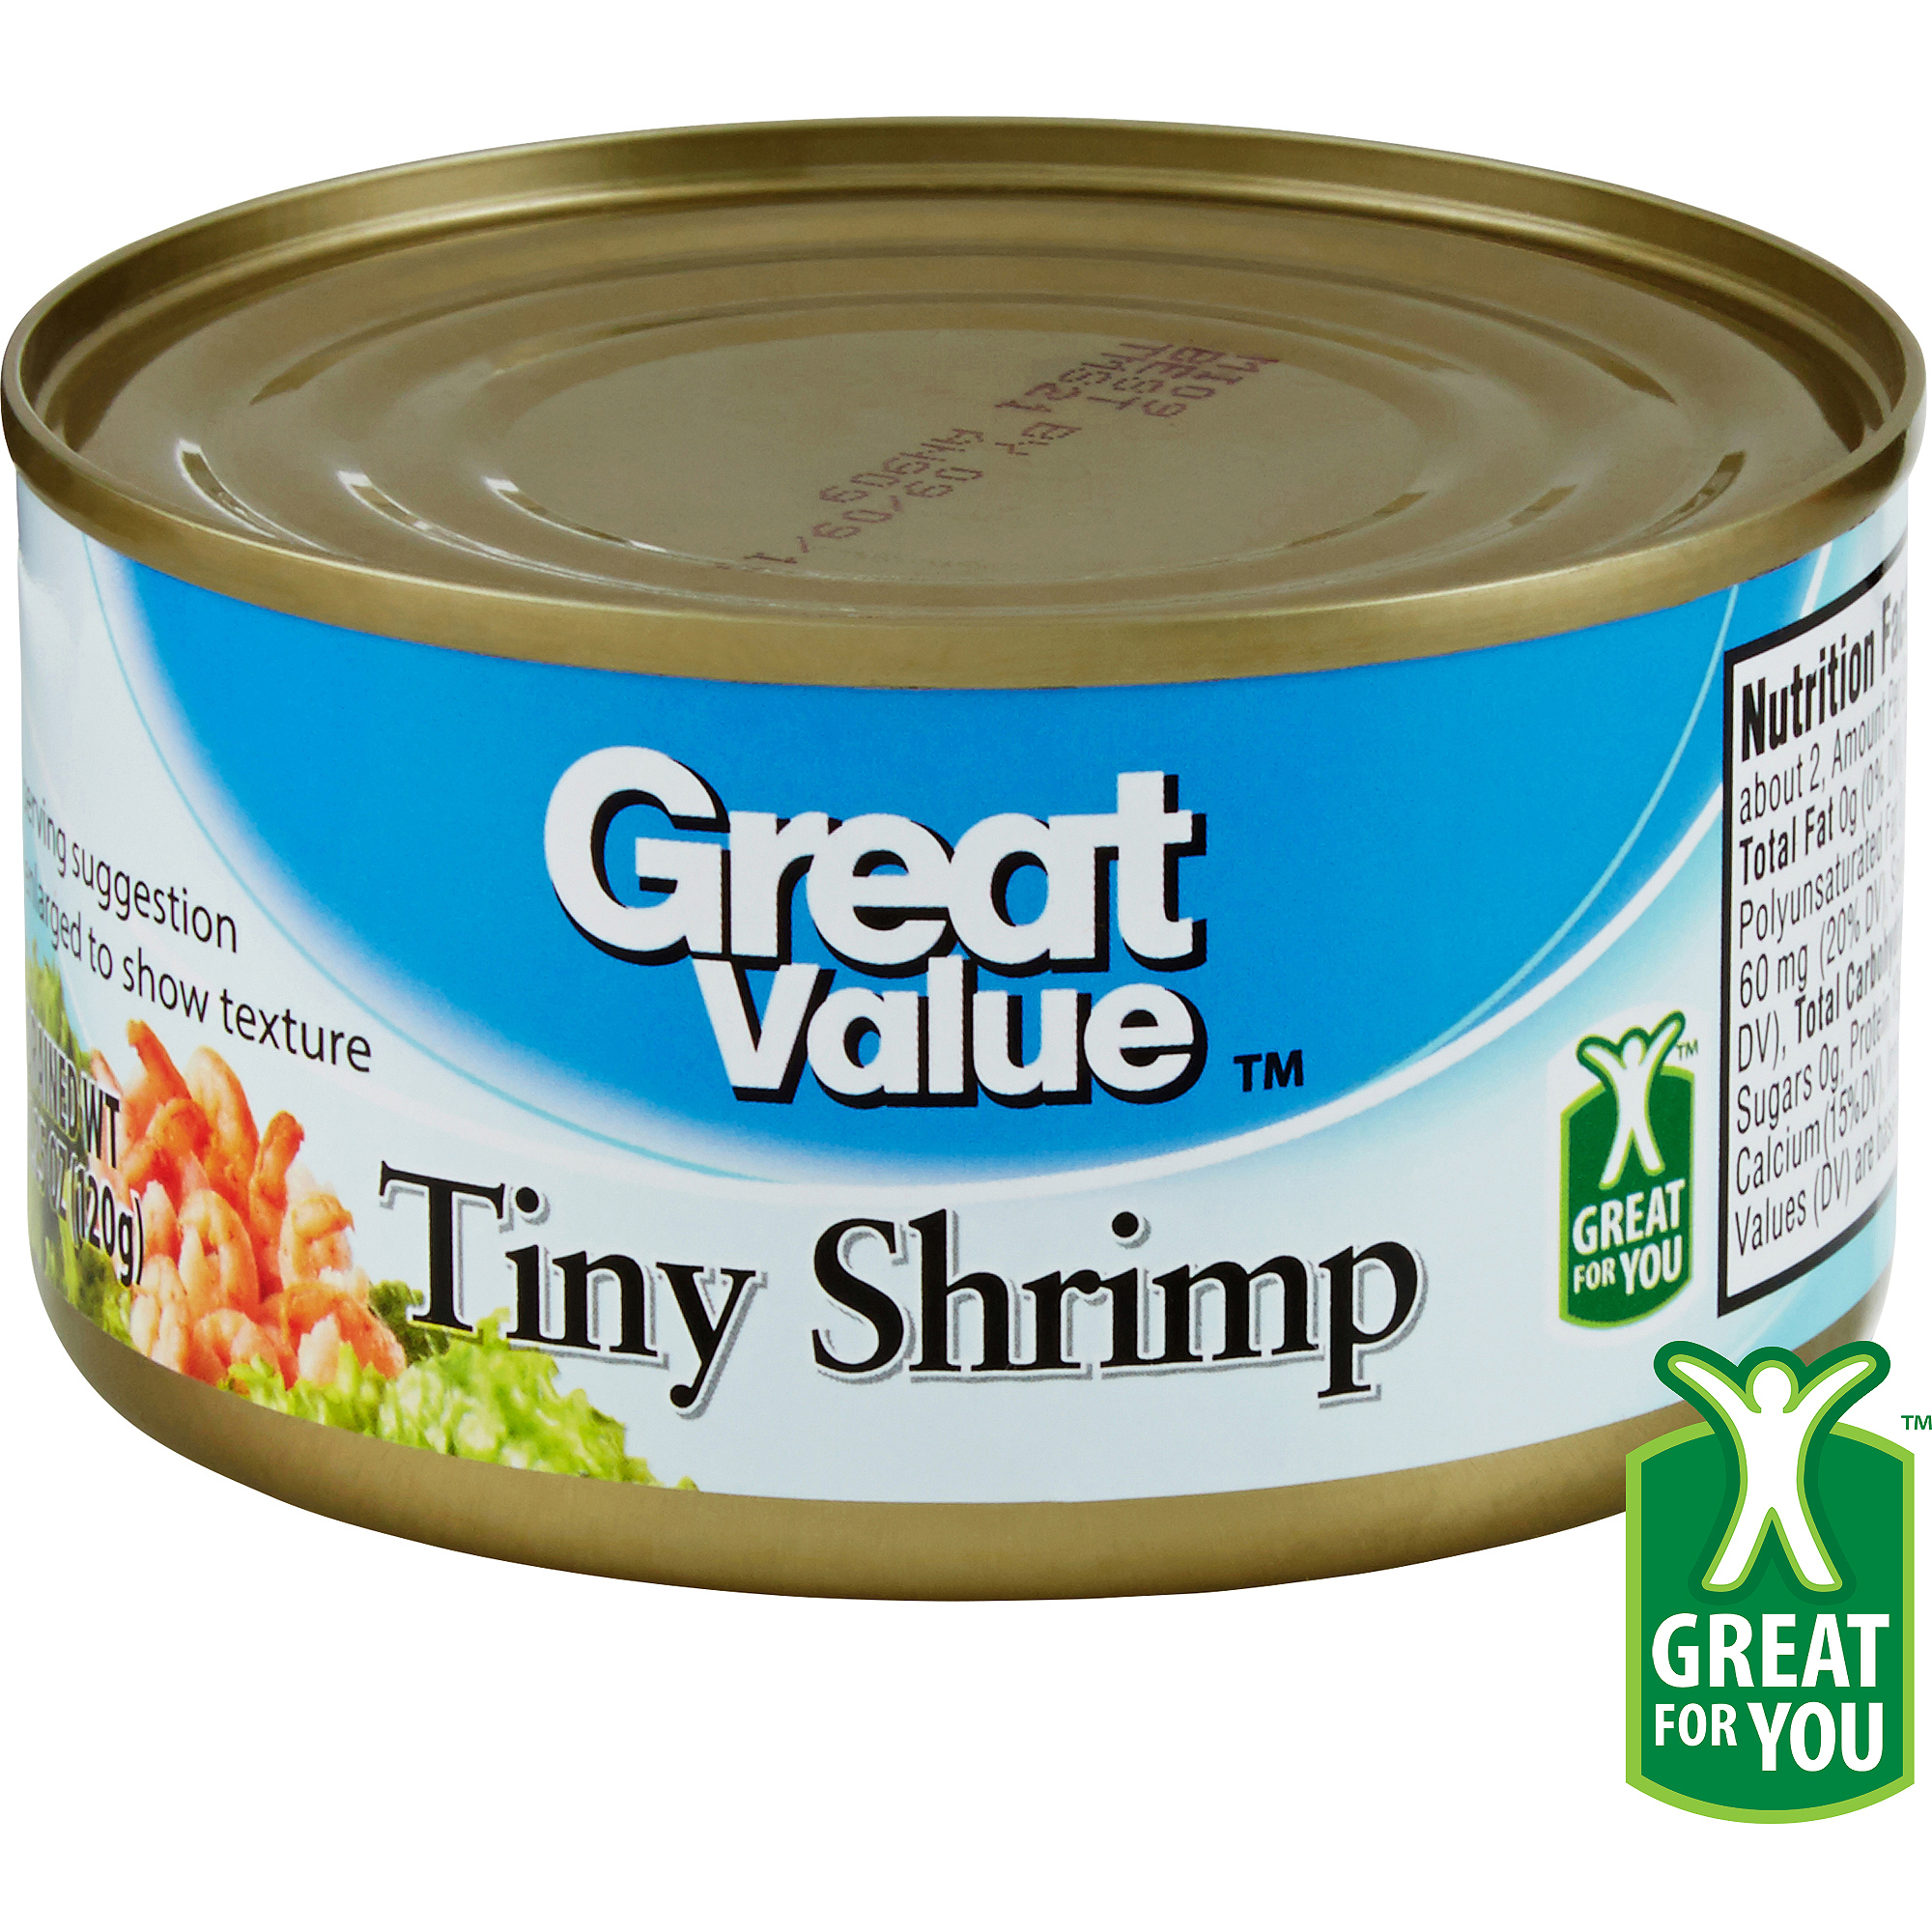 Great Value Tiny Shrimp, 4.25 oz